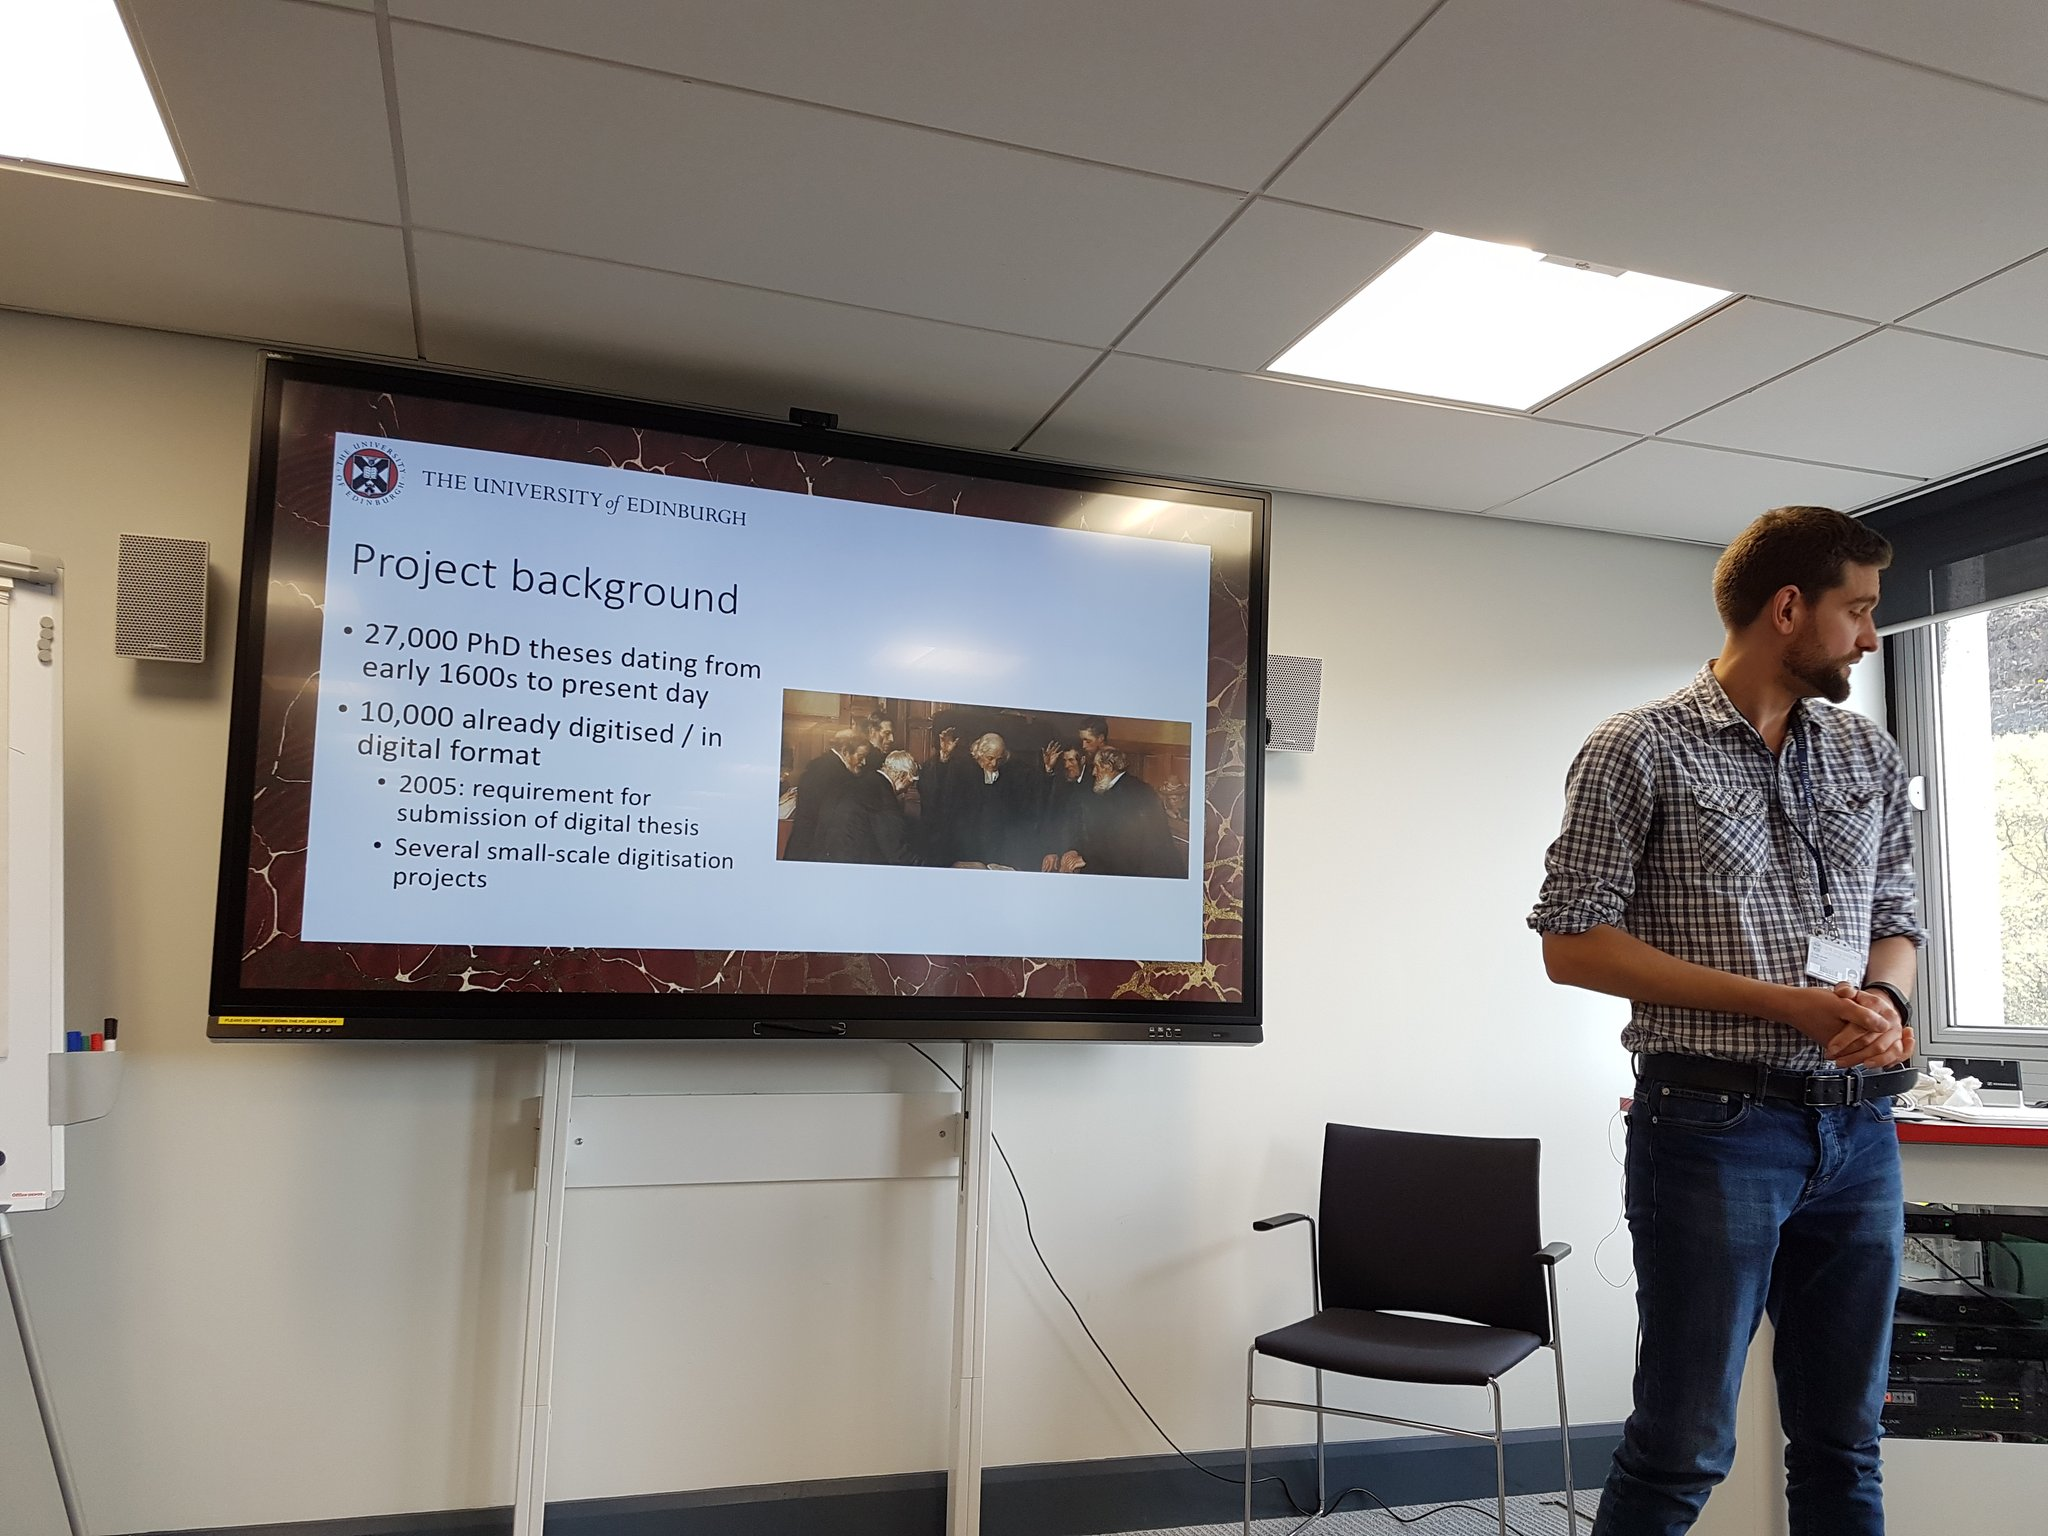 .@GWillshaw up first on the PhD theses digitisation project allowing global access to this unique collection #uoeOKN https://t.co/oiyLQf9GXg